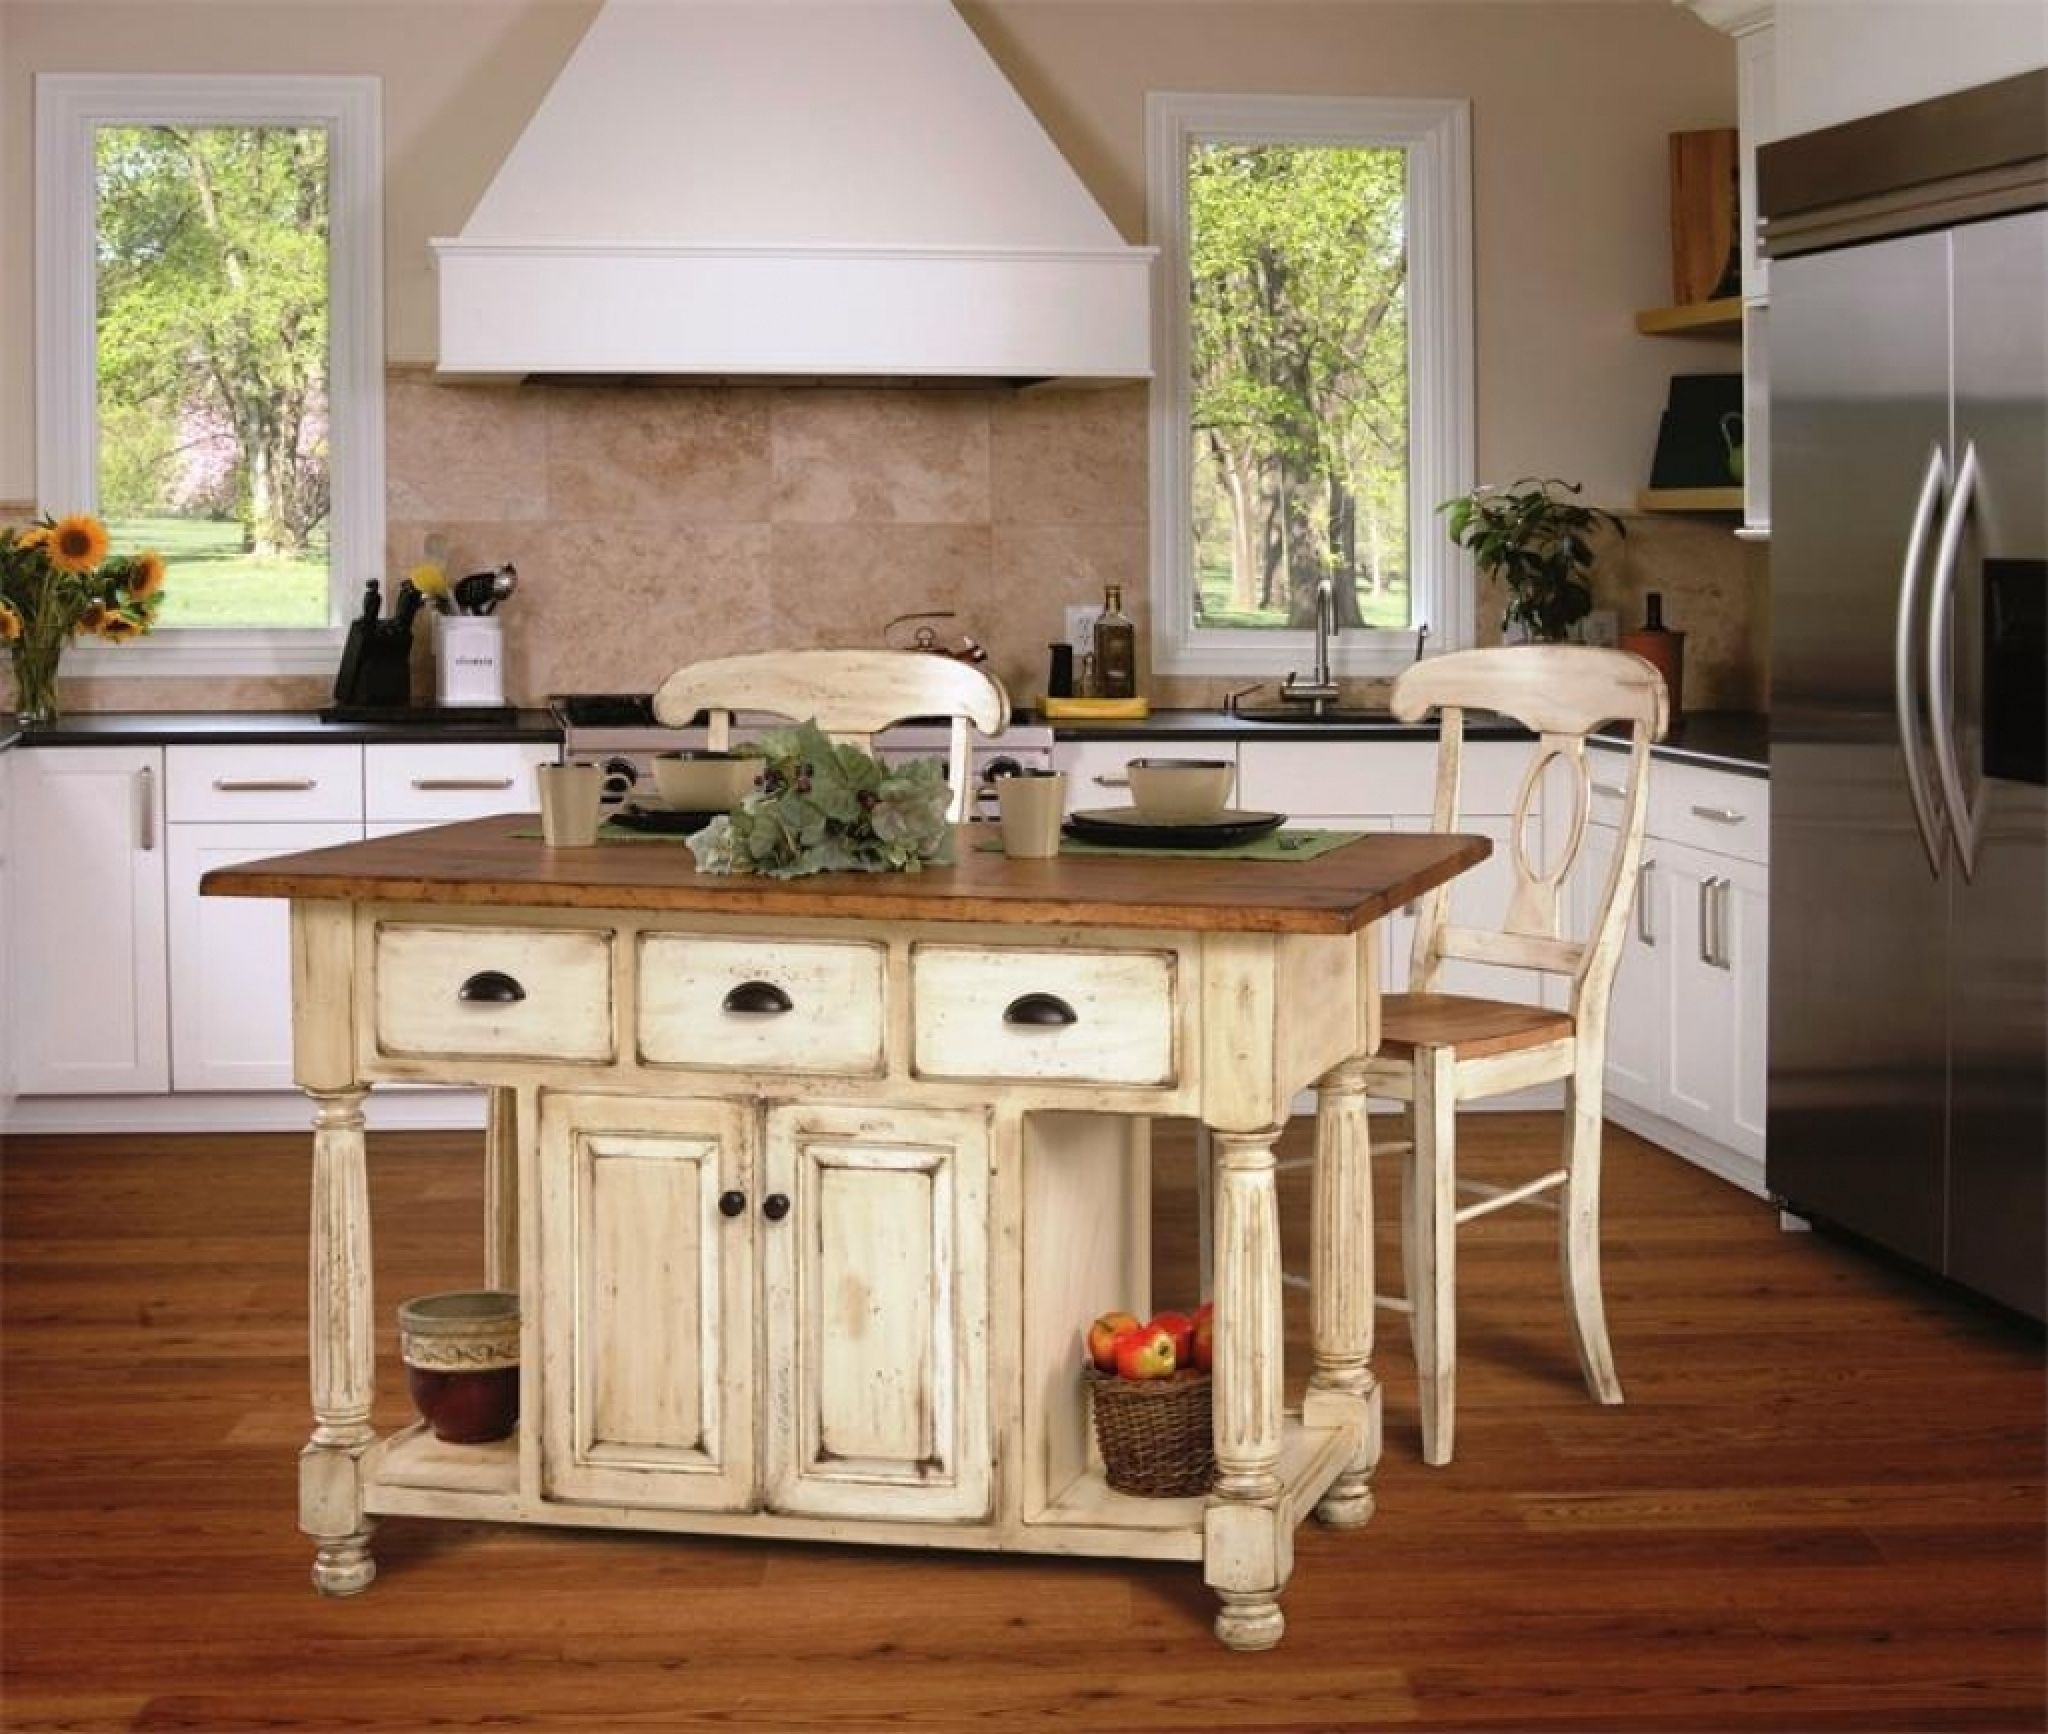 Menards Kitchen Cabinet Hardware  Kitchen Counter Organization Glamorous Kitchen Cabinets Menards Design Inspiration